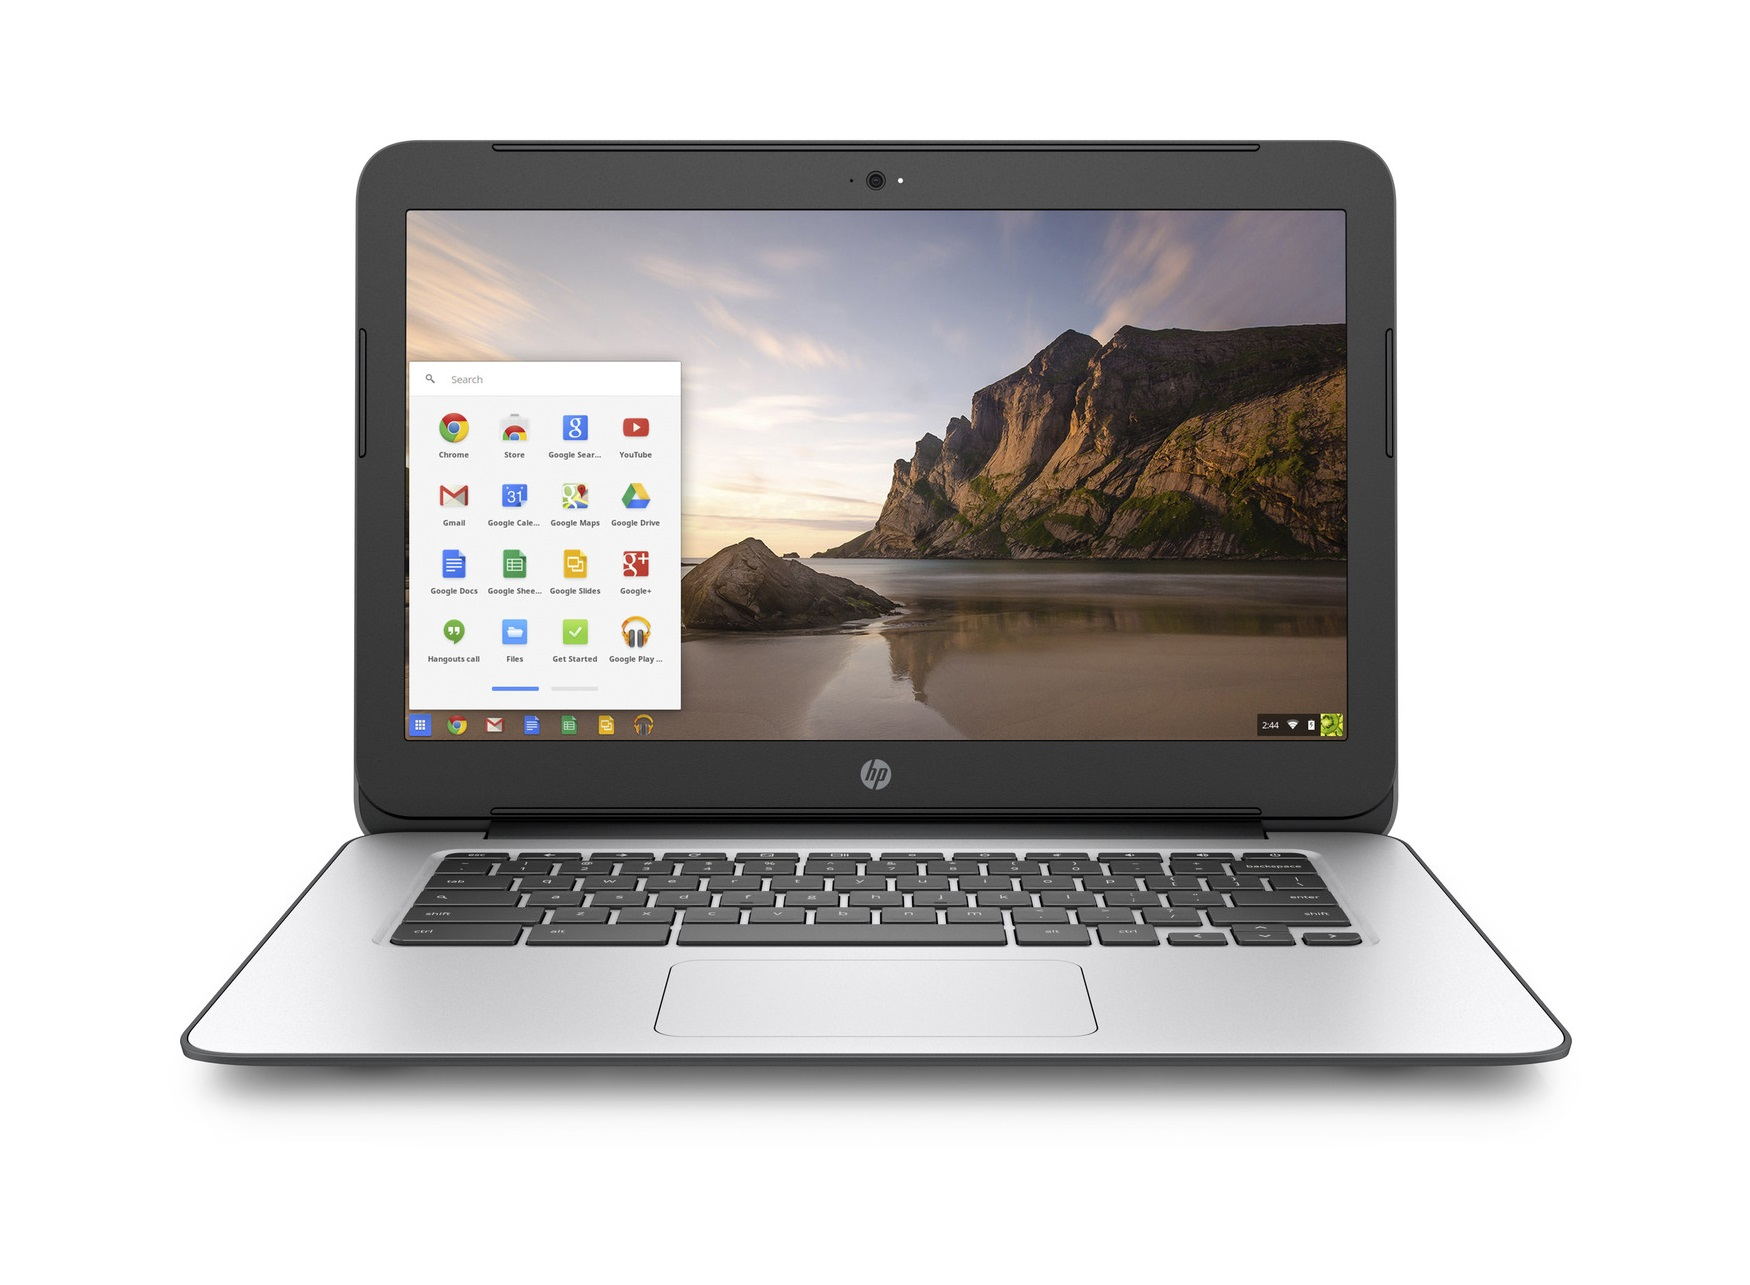 Acer and HP unveil new Chromebooks ahead of CES